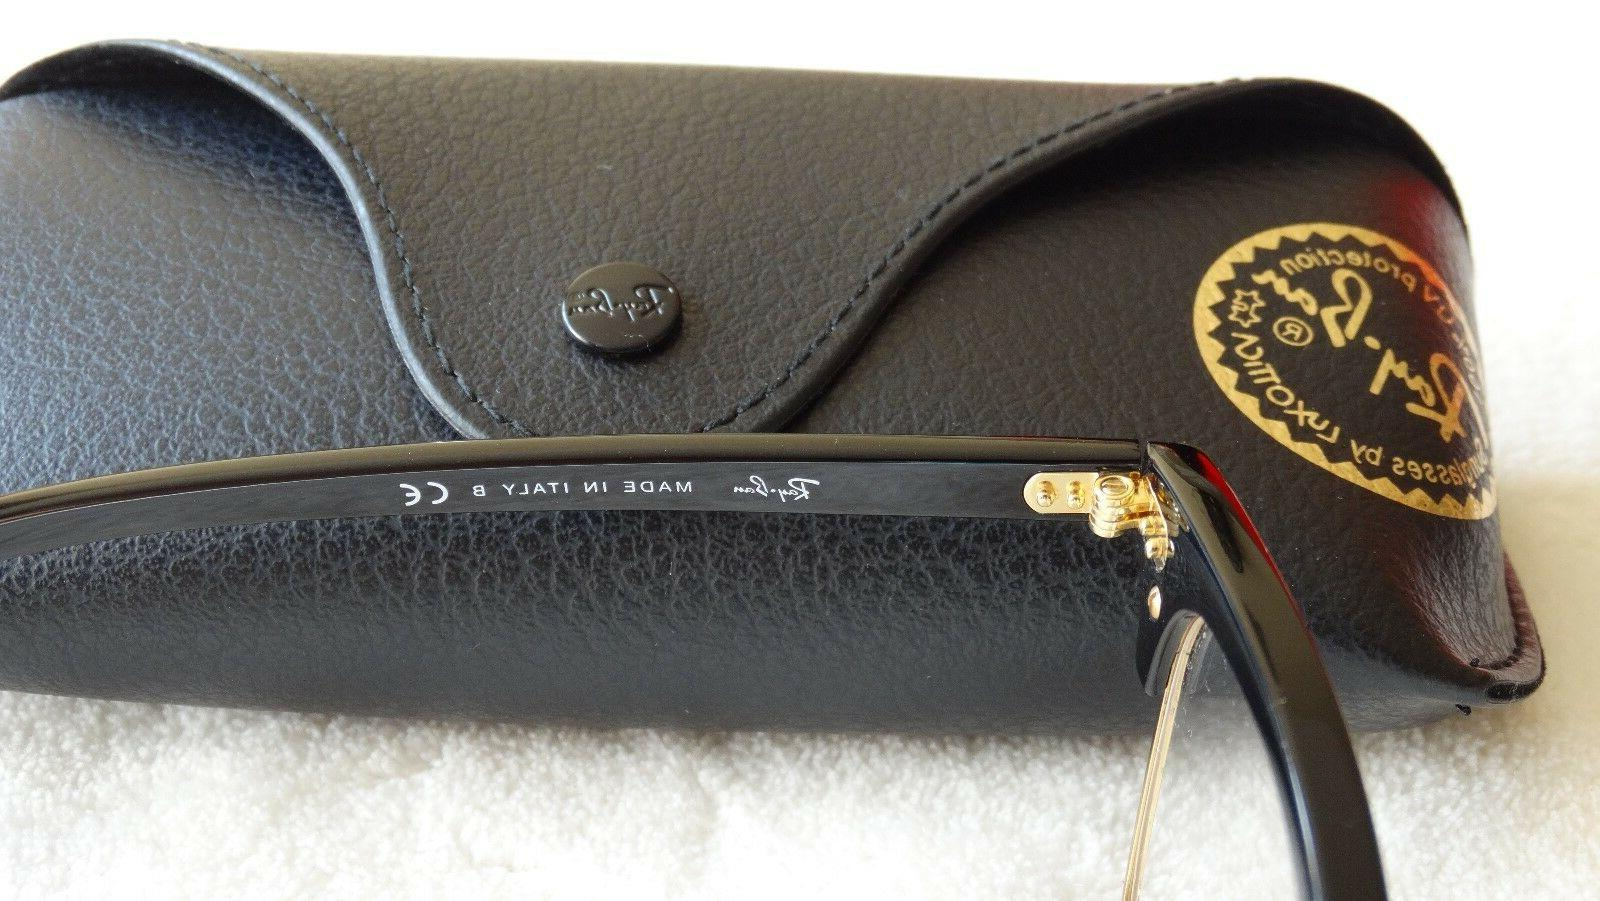 BRAND NEW! RAY-BAN RB 5154 FRAME SIZE 51 MM GOLD ITALY